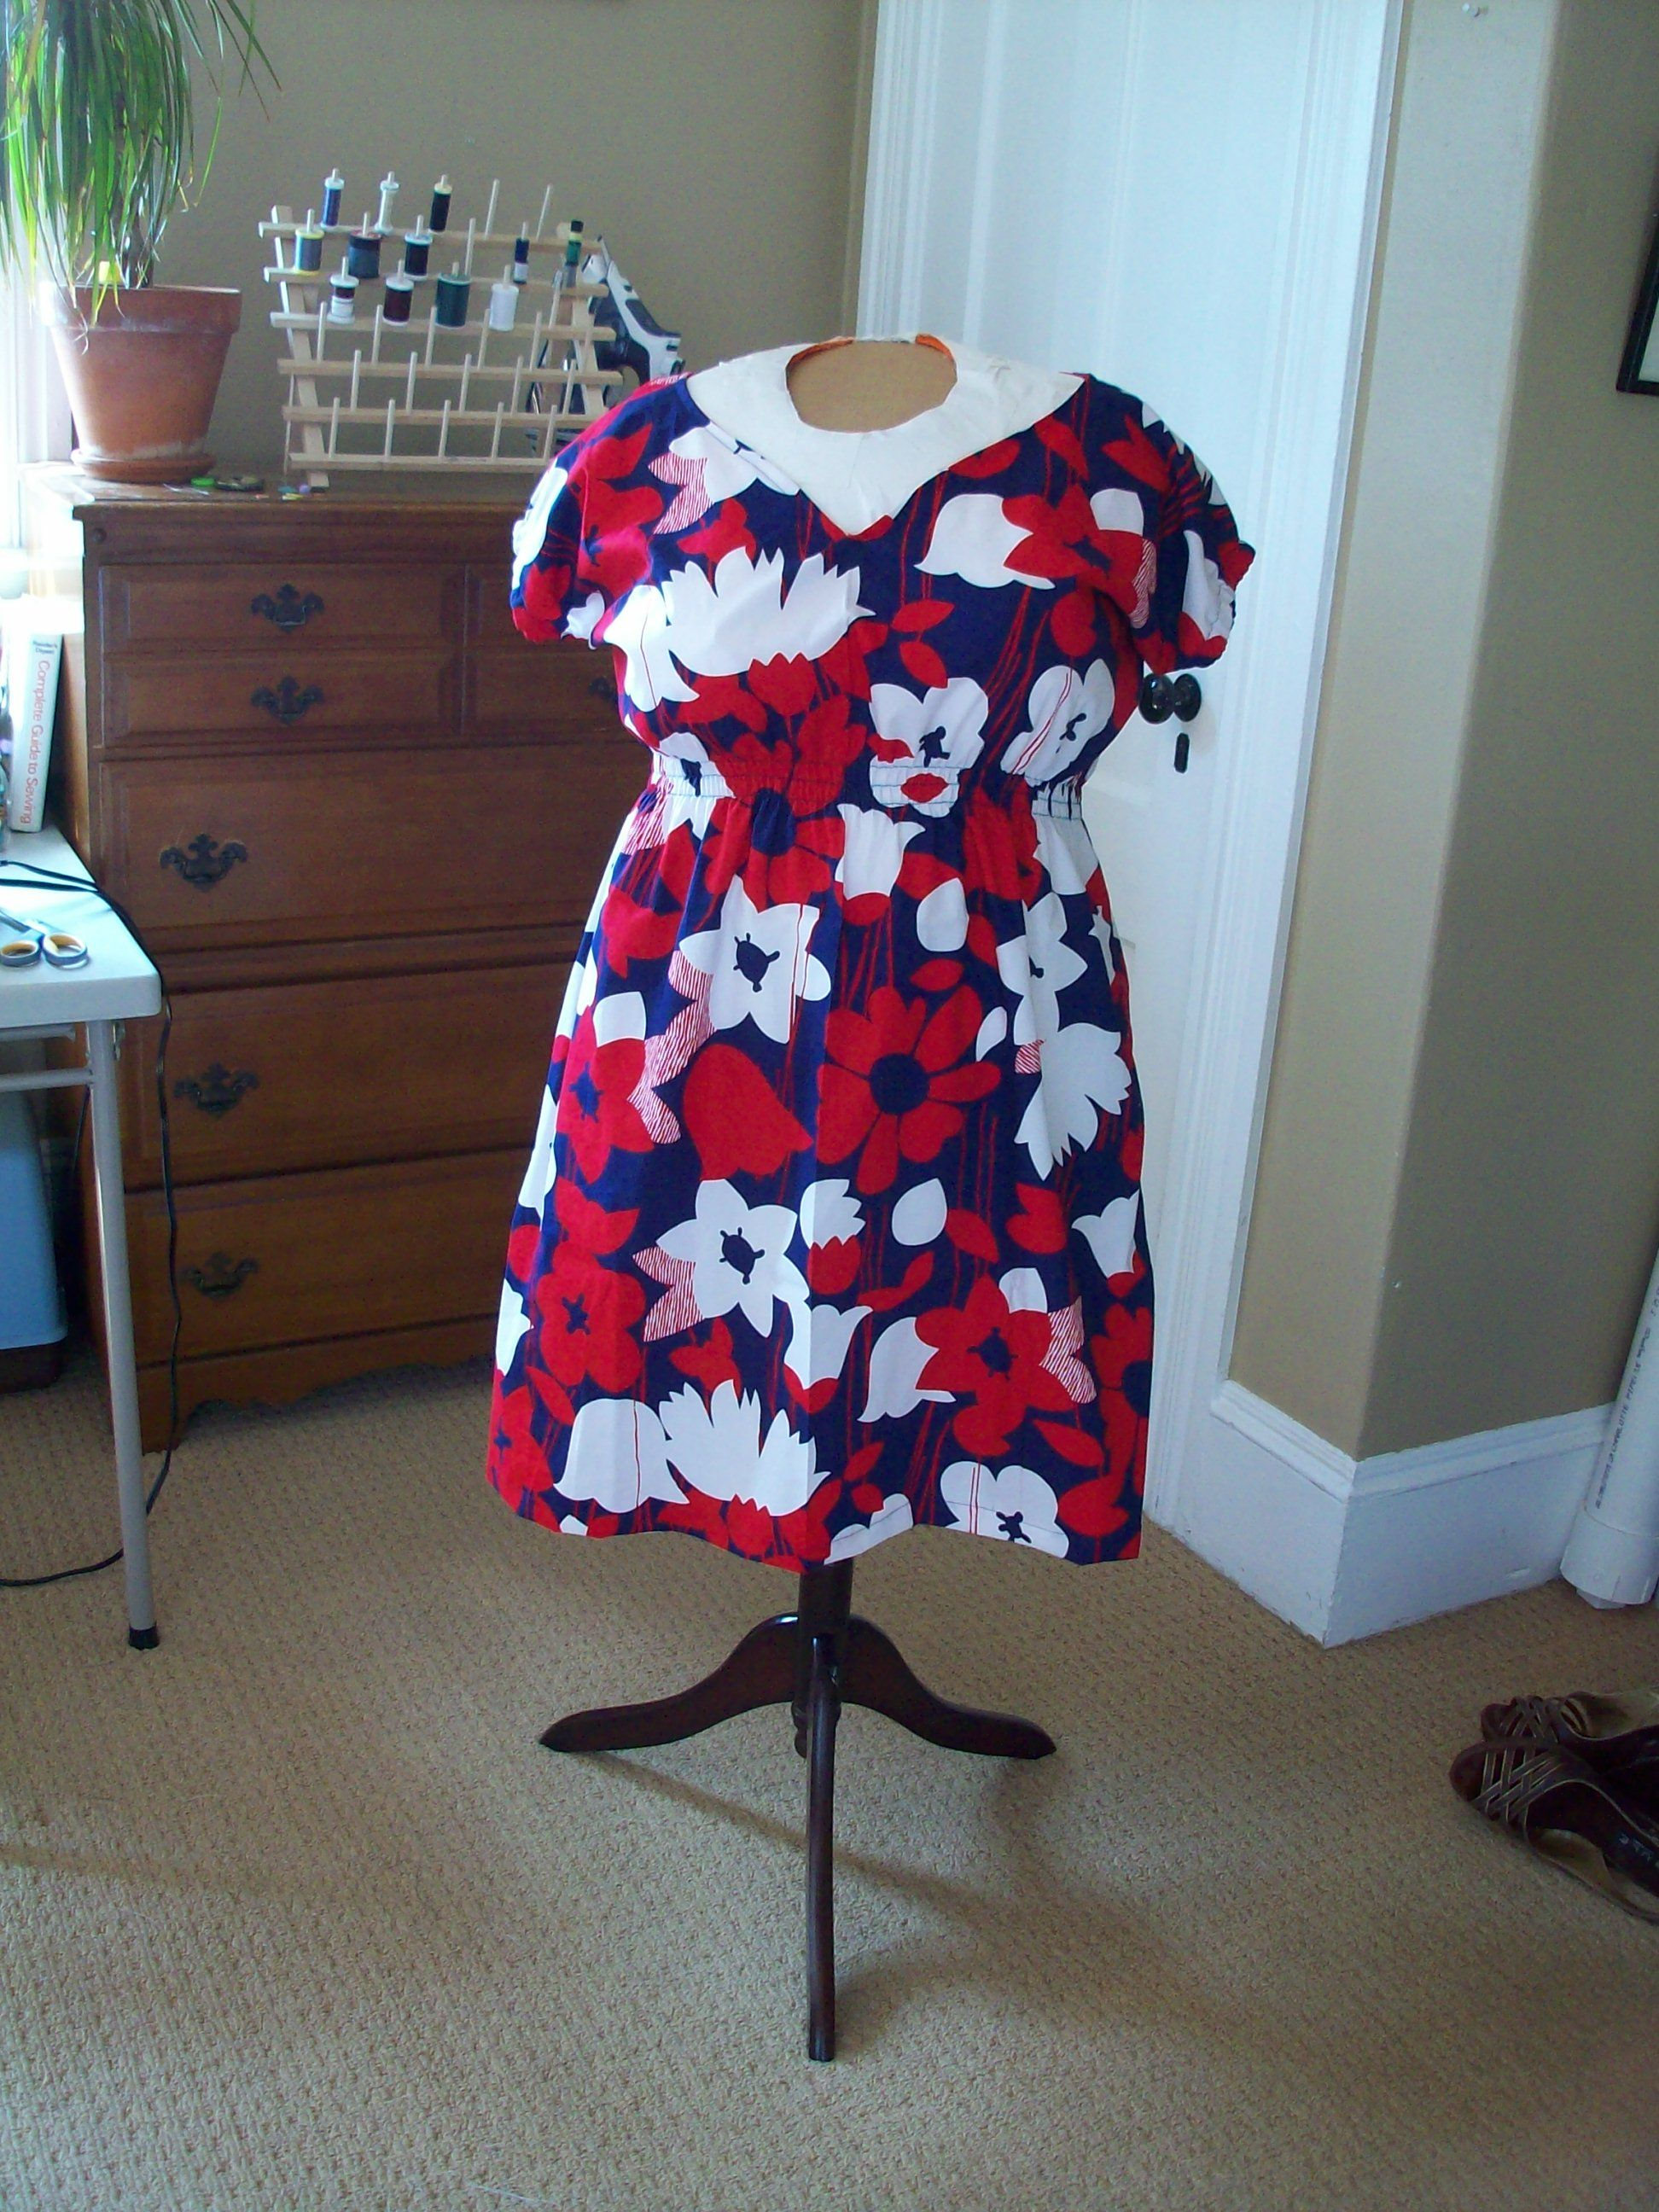 A dress with cinched waist, using elastic thread. Tutorial here: http://www.prudentbaby.com/2010/04/most-flattering-shirt-dress-diy.html.